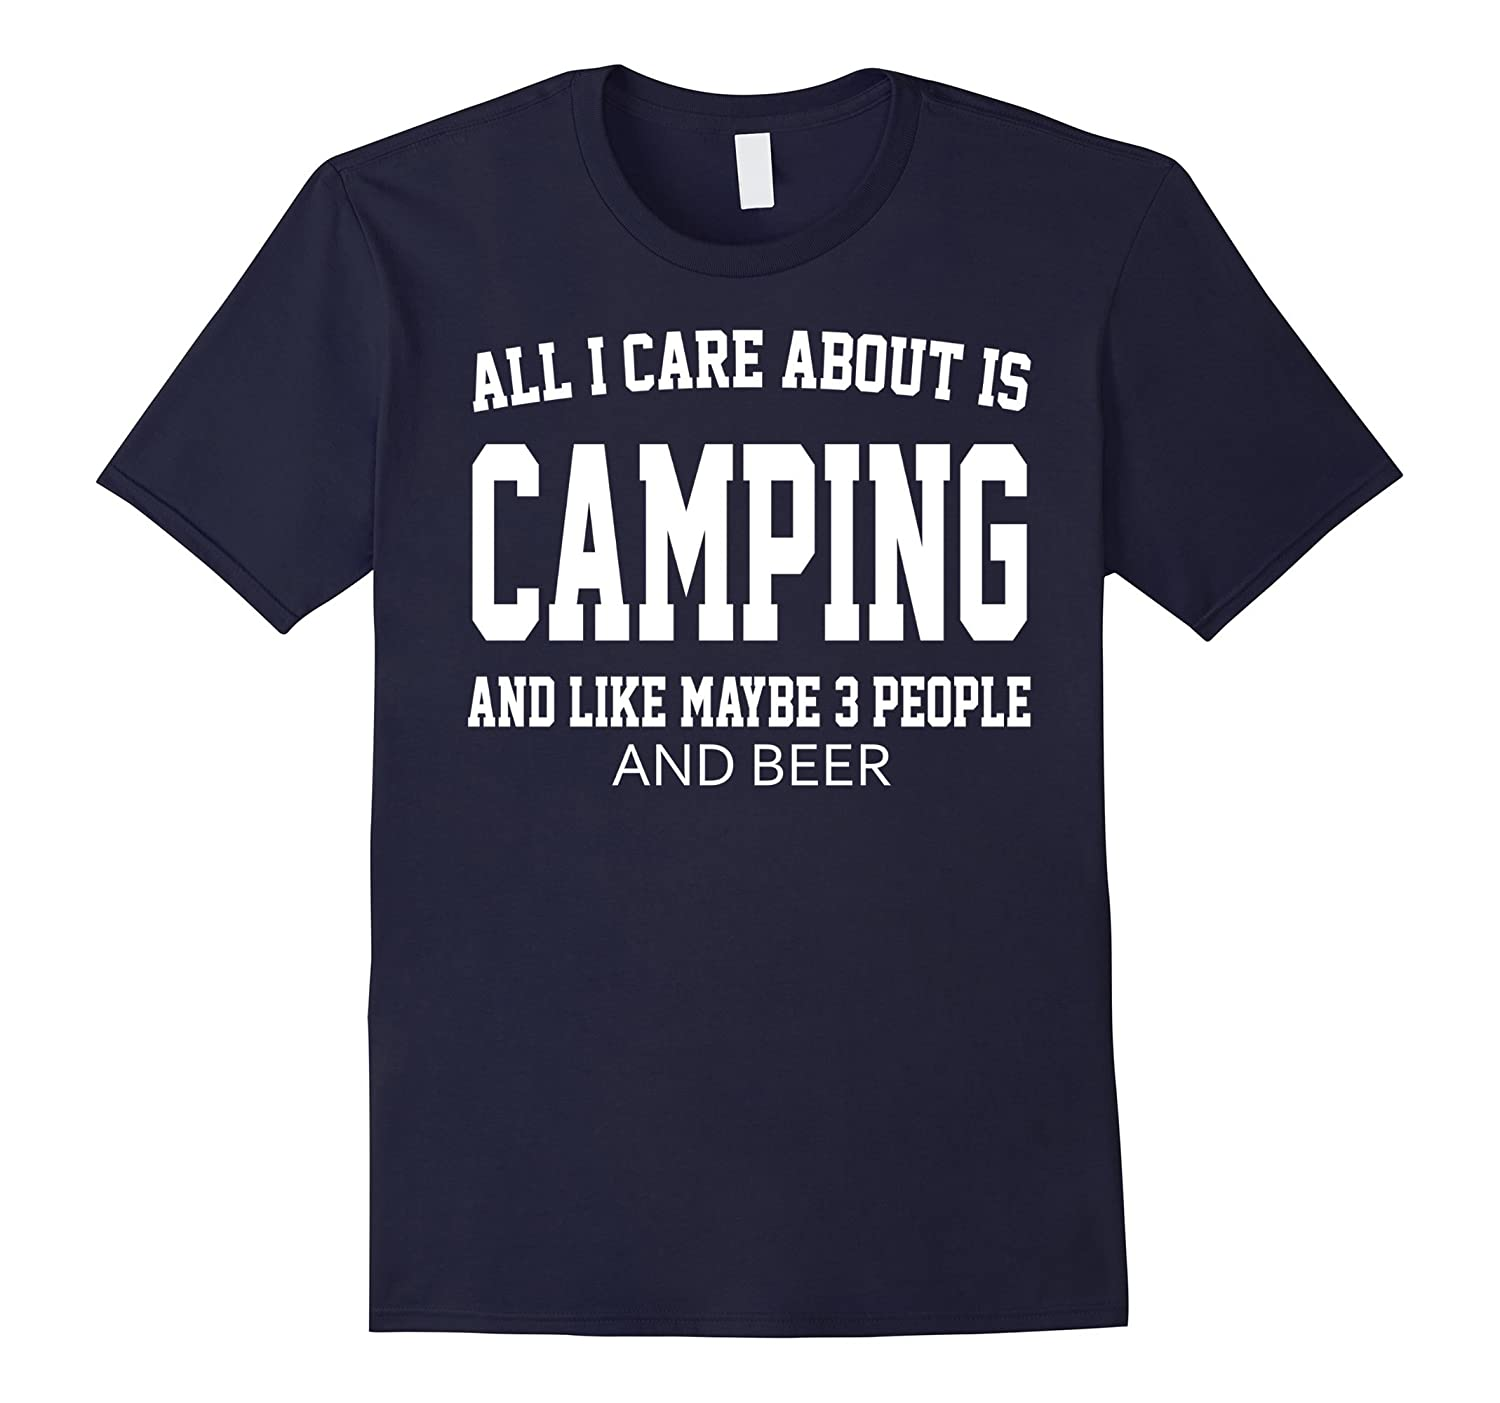 All I care about is Camping T shirt like 3 people-CL